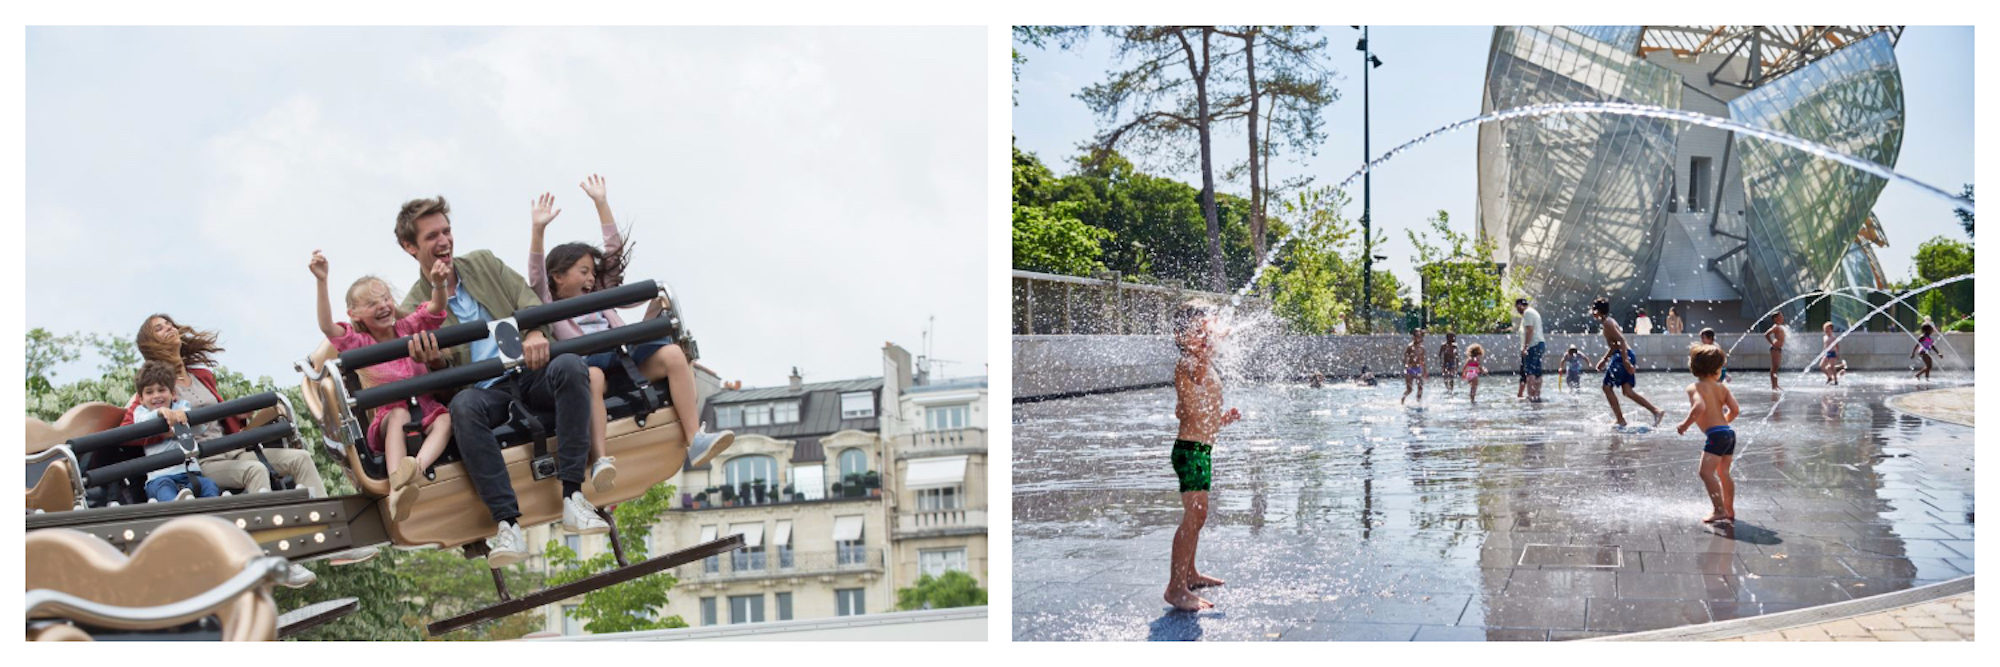 A father and his two kids having fun in kid-friendly Paris on a fair ground ride (left) and children in their bathing suits playing in the fountains outside the Louis Vuitton Foundation in the summer sun (right).